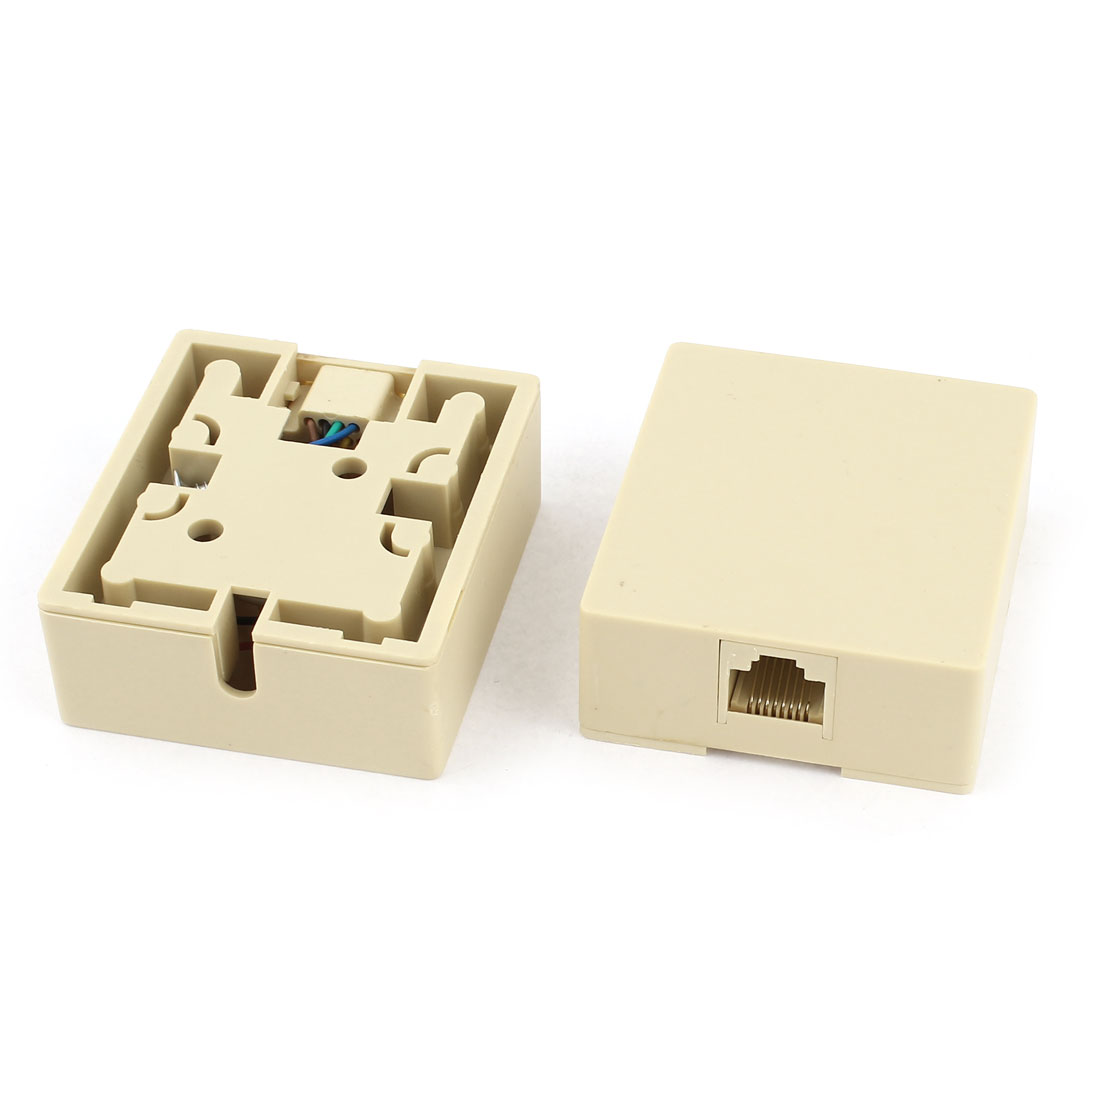 2 X Rj45 8p8c Female Ethernet Network Cable Connector Surface Mount Box Wiring